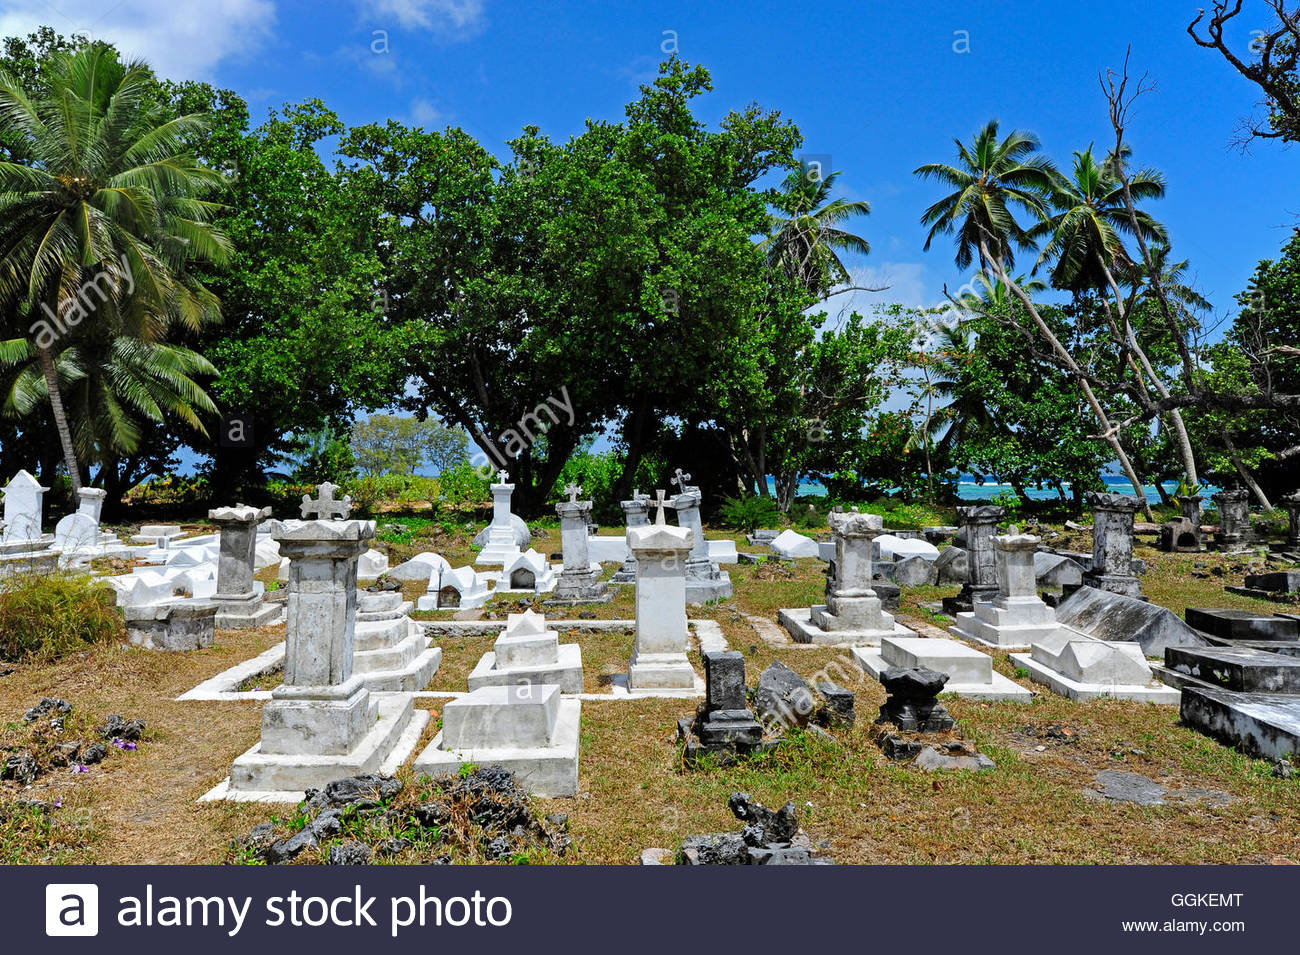 Colonial cemetery on the premises of an old coco plantation, Union Estate national park, La Digue Island, the Seychelles, Stock Photo